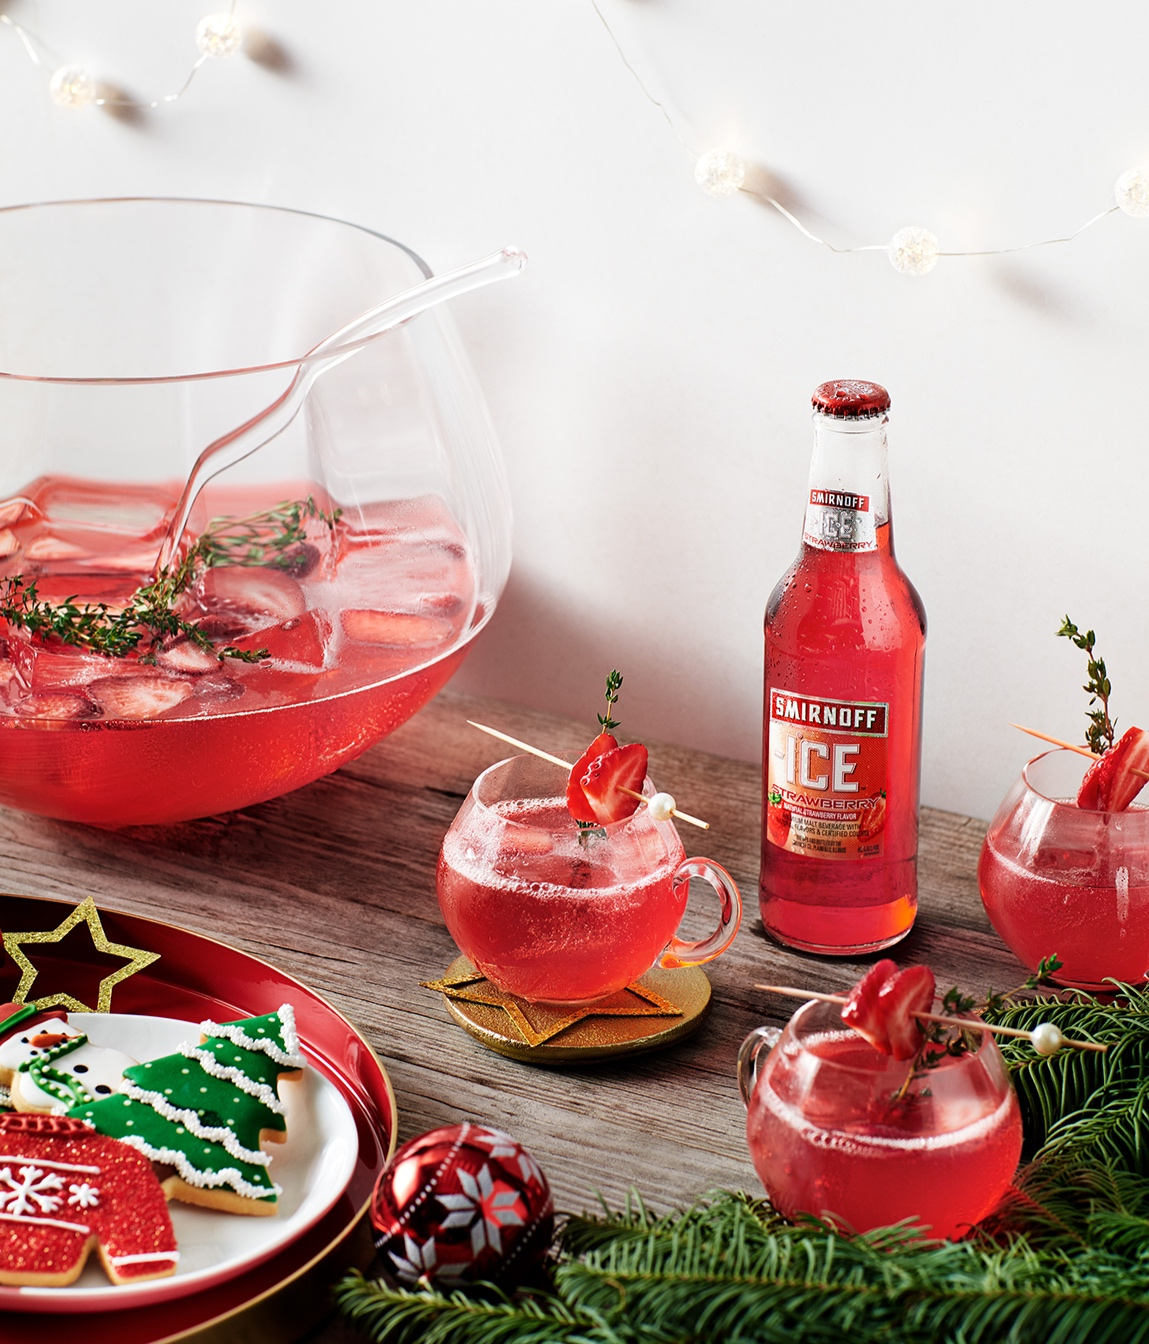 193_01c_Christmas_ICEStrawberryPunch_US_024.jpg